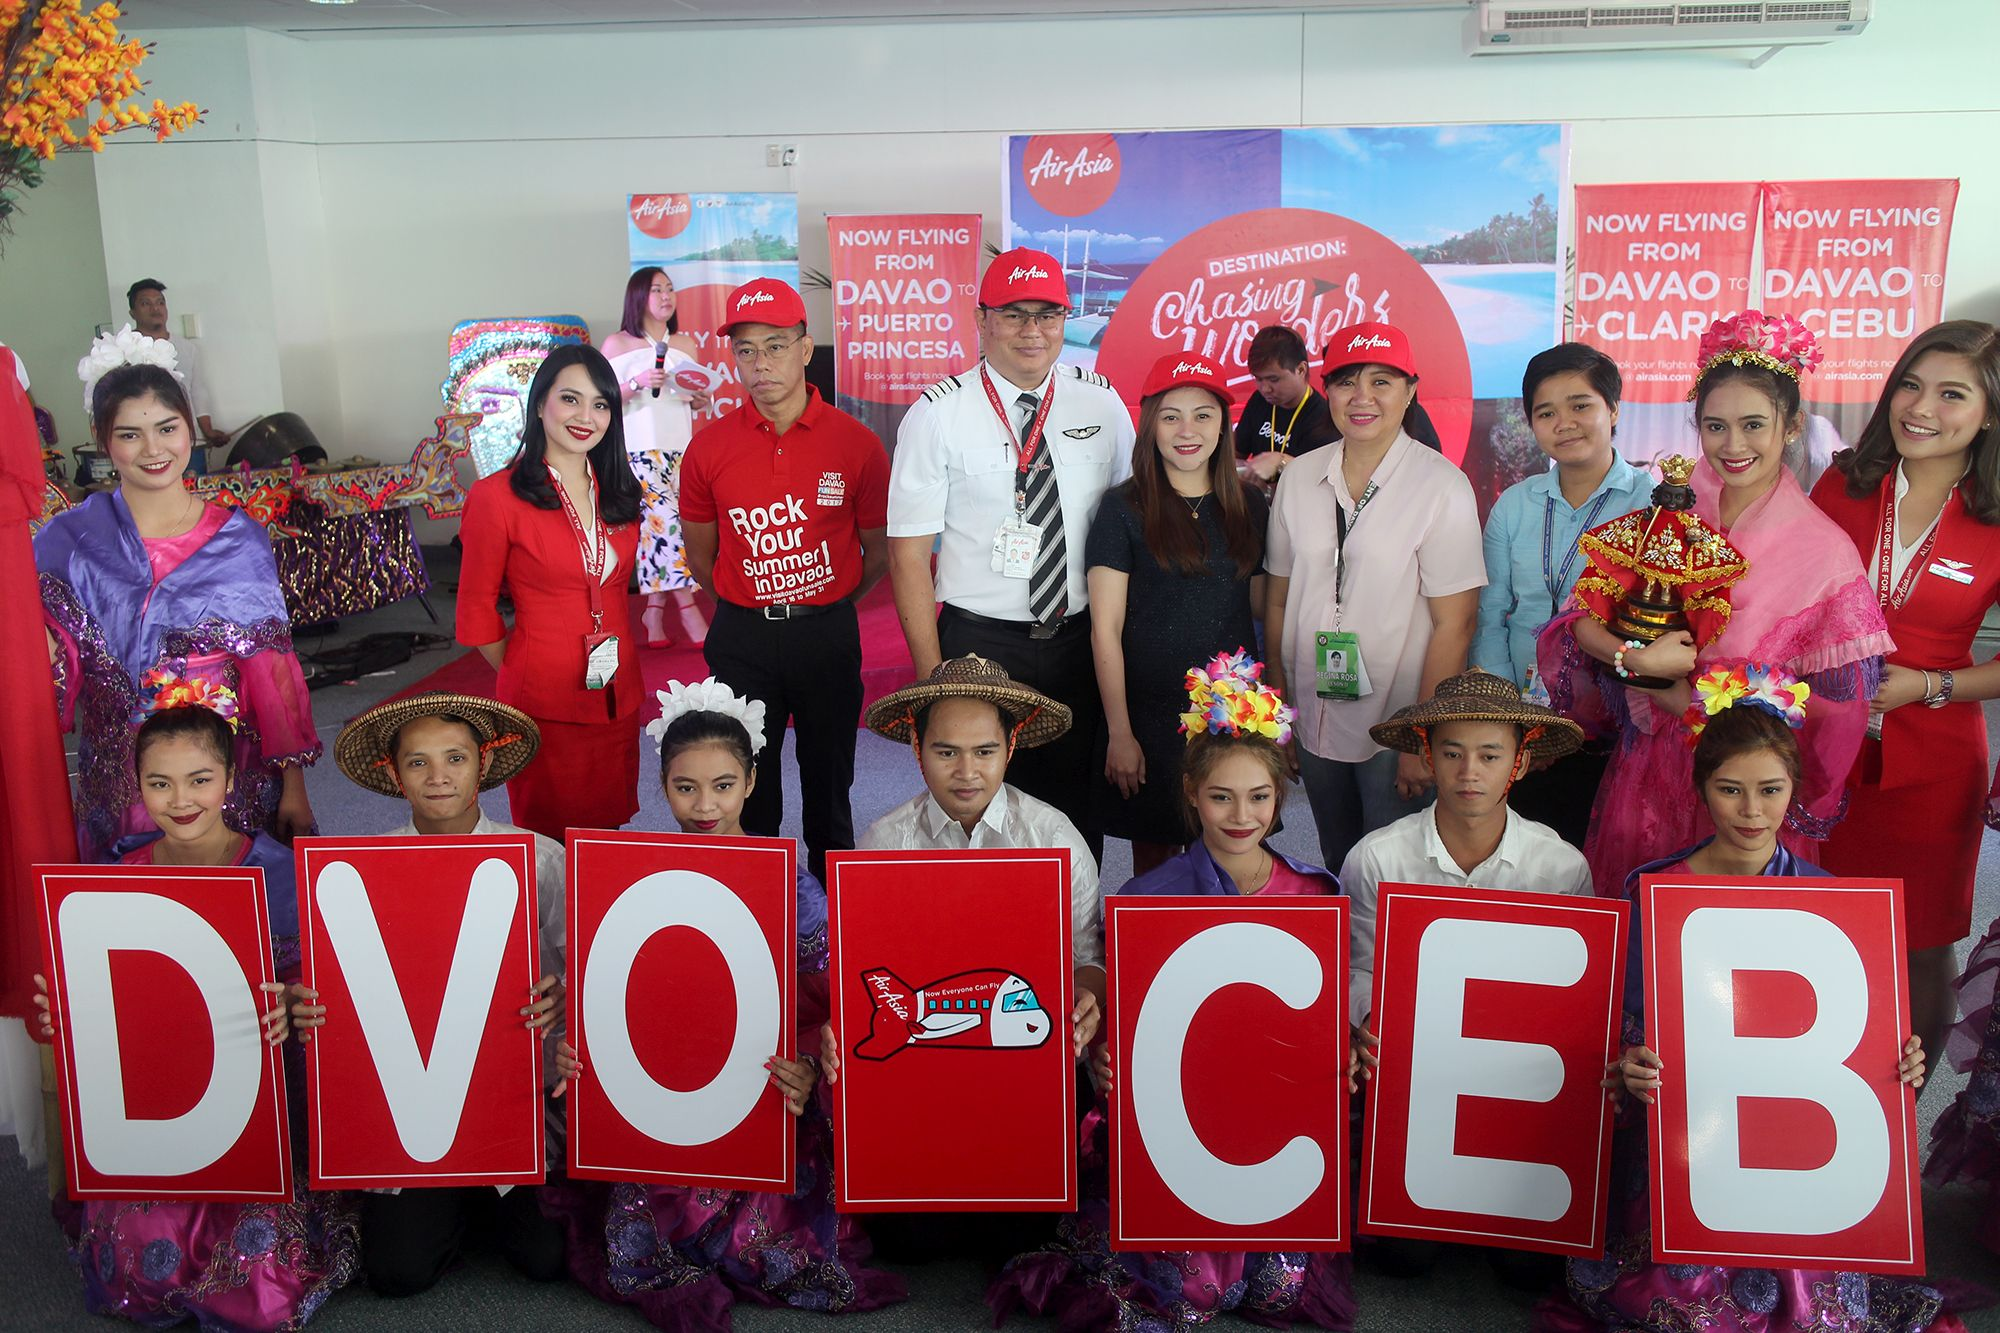 airasia flights from davao to cebu